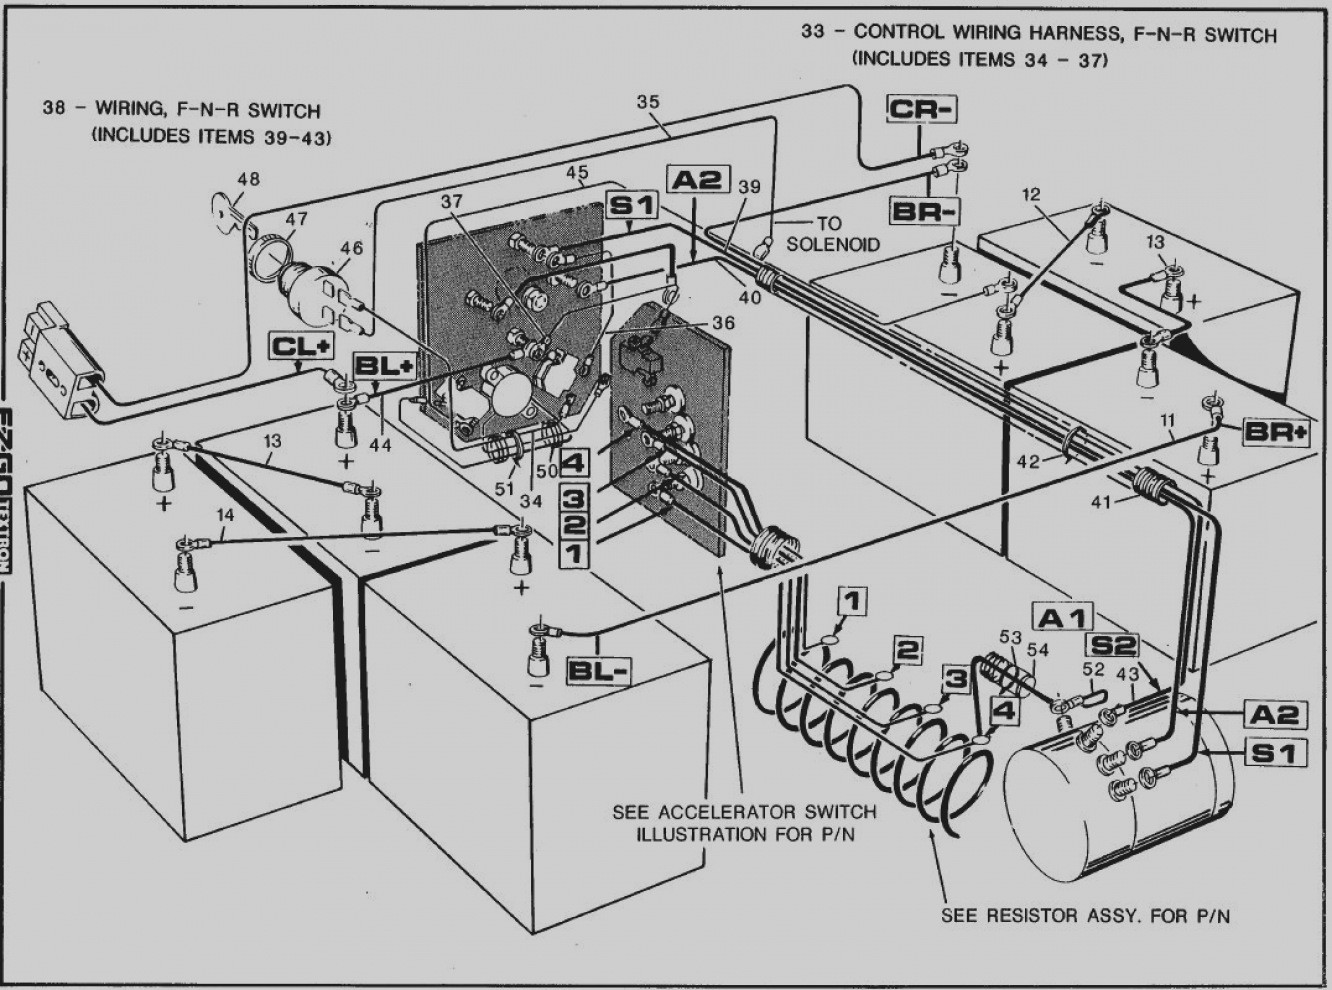 melex golf cart wiring harnesse wiring diagram 1999 Melex Golf Cart Battery Wiring Diagram melex golf cart wiring diagram